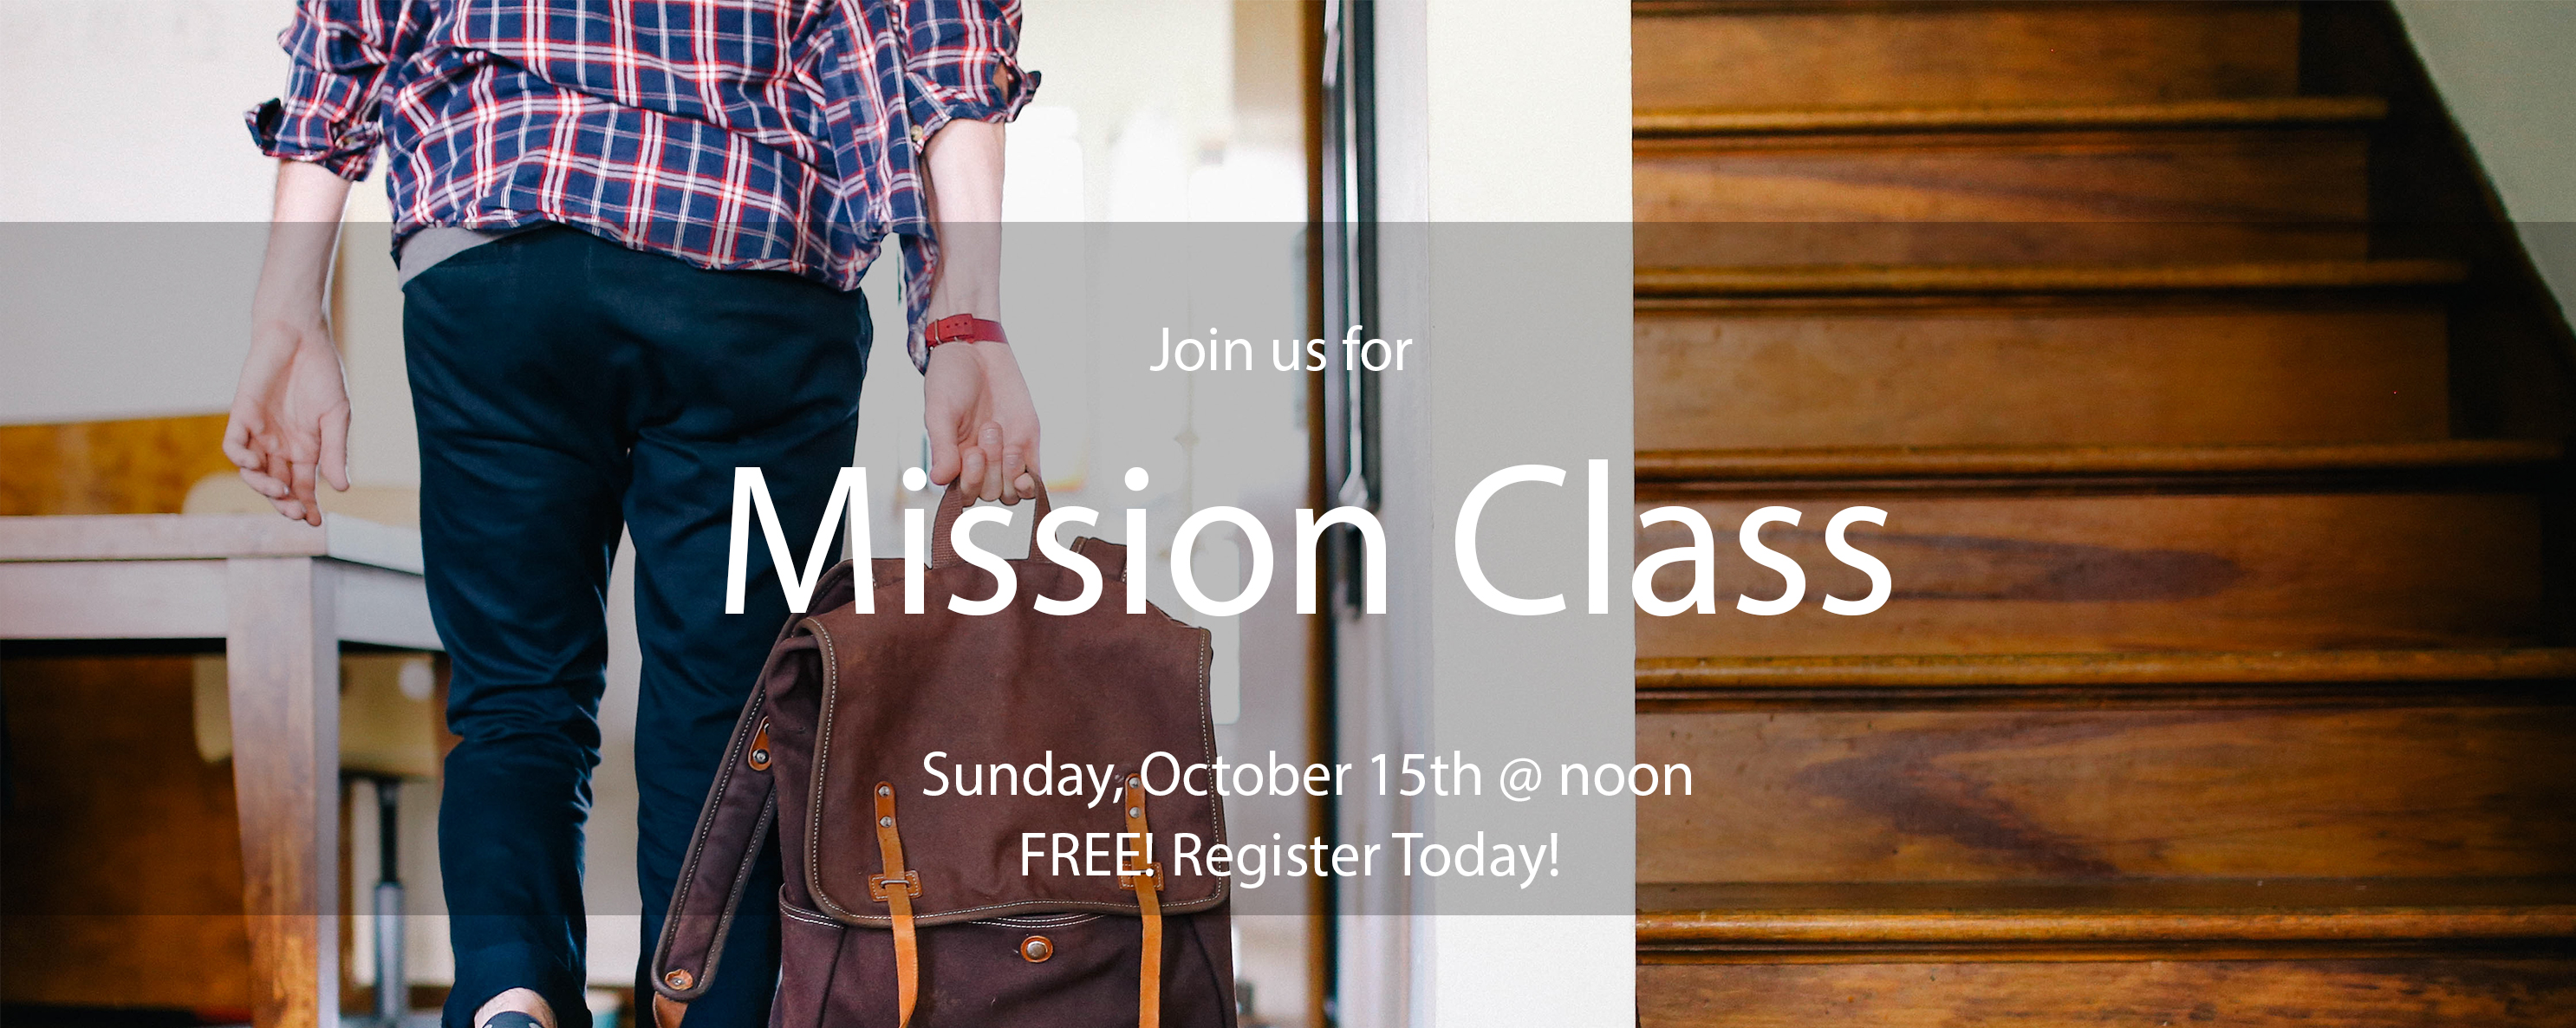 Mission Class Carousel